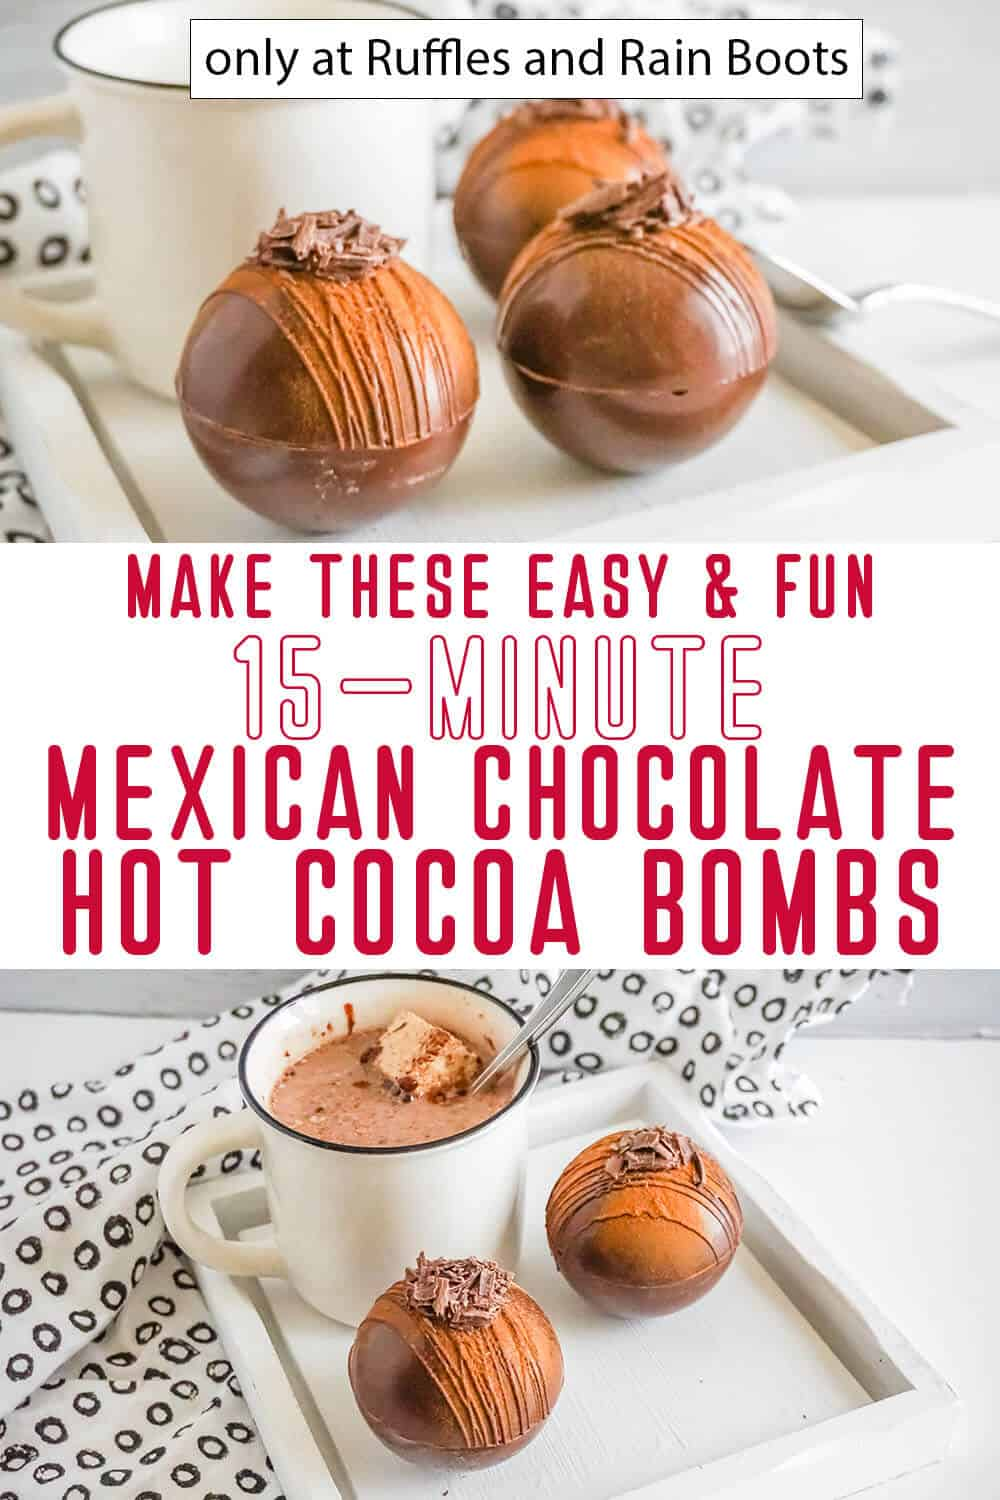 photo collage of mexican chocolate hot cocoa bombs with text which reads make these easy & fun 15-minute mexican chocolate hot cocoa bombs